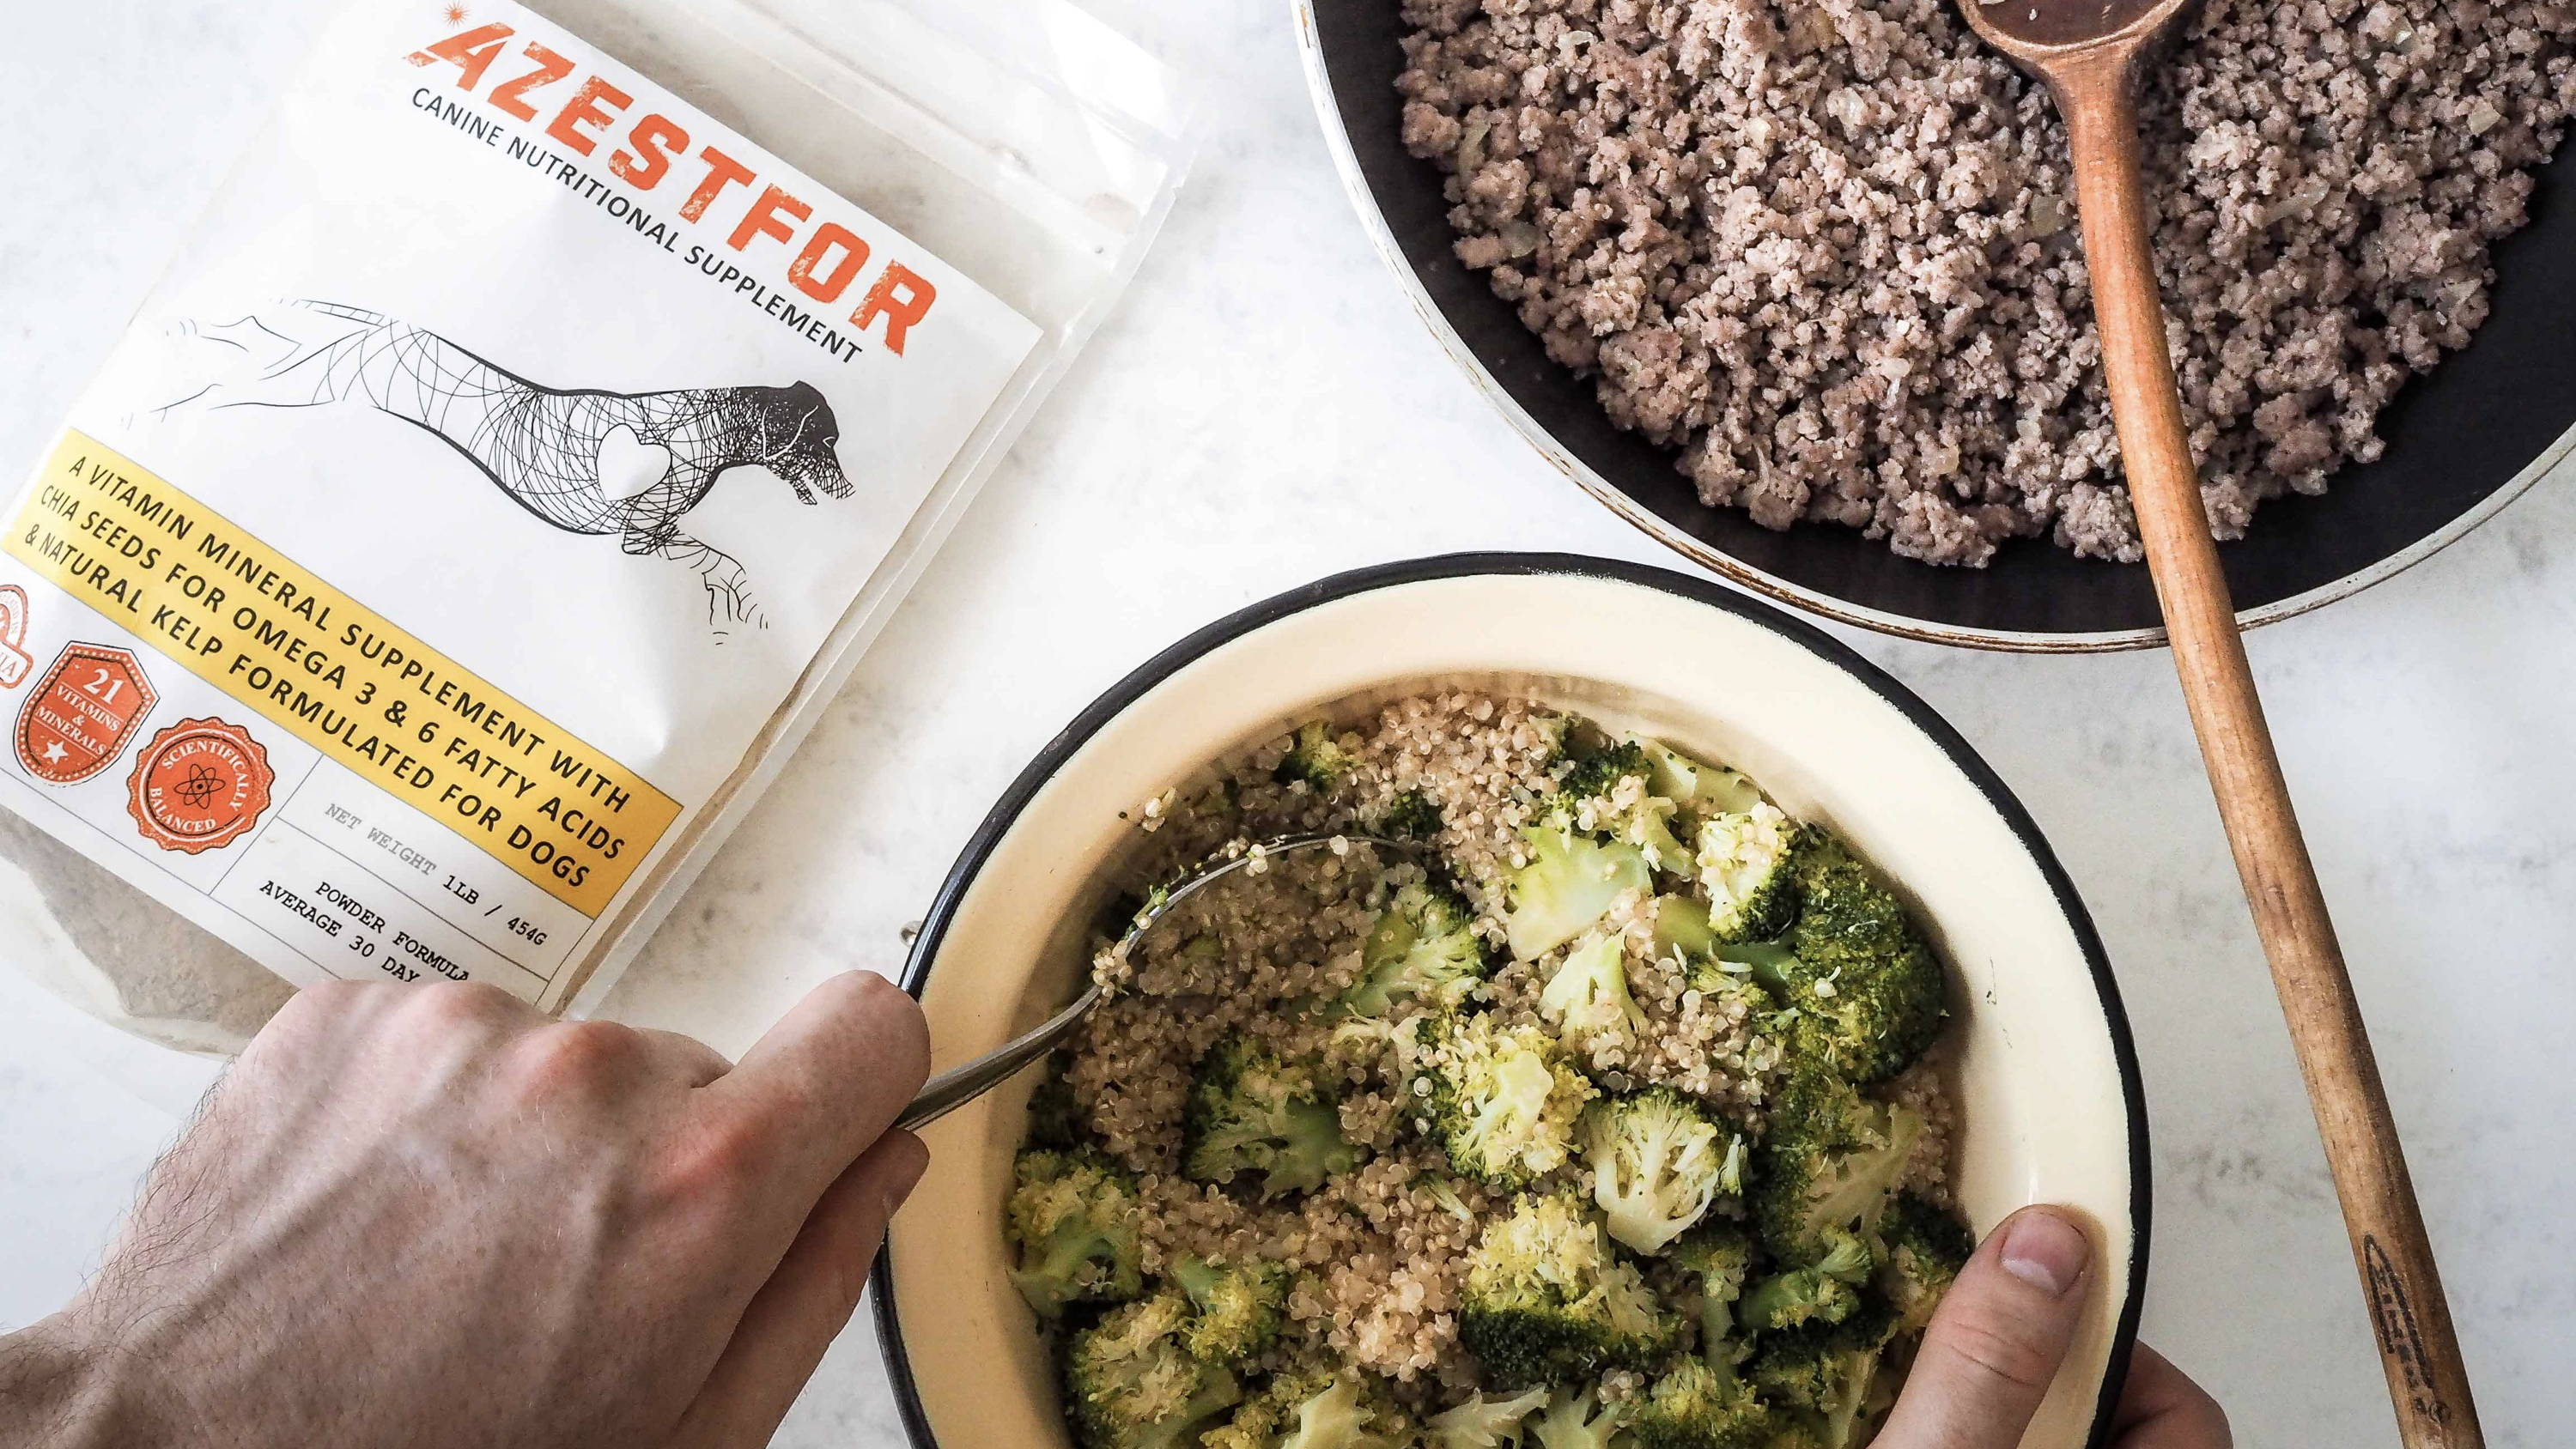 ingredients cooking for your dog beef quinoa broccoli